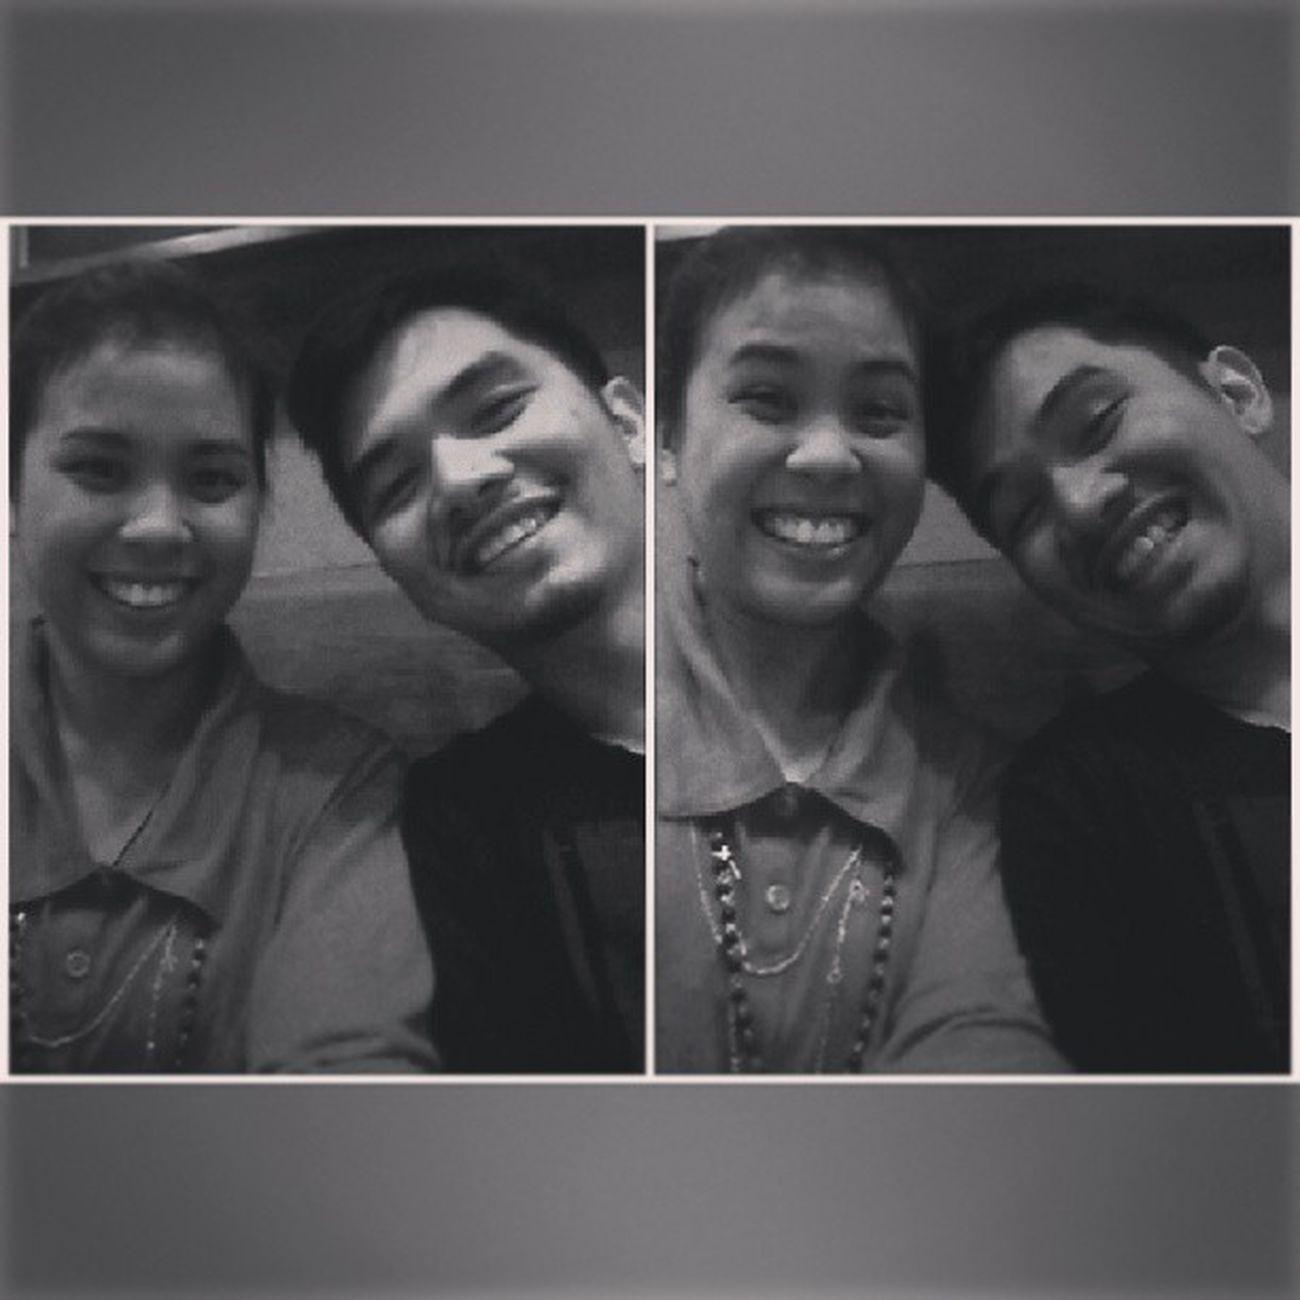 19th monthsary early celebration with @armelbonifacio . I love you! :-* Medyonapaaga Nov1 Undaskasi